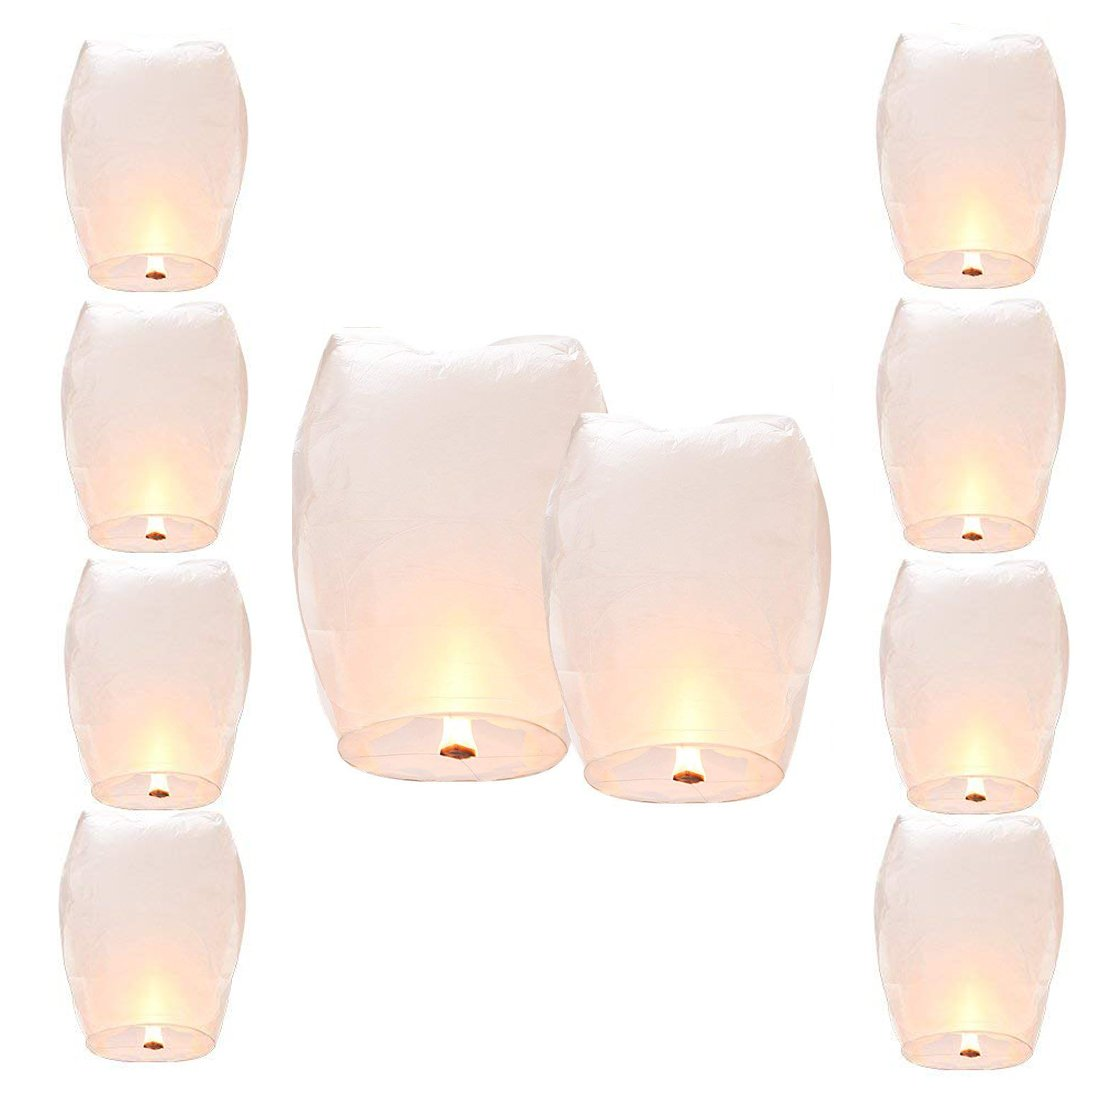 Shellvcase Wish Lanterns Sky, 10Pcs Fly Sky Wish Paper,Fully Assembled, 100% Biodegradable,New Designed Environmentally Fly Paper,Great for Birthdays, Holidays, Weddings, Memorials, 4th of July